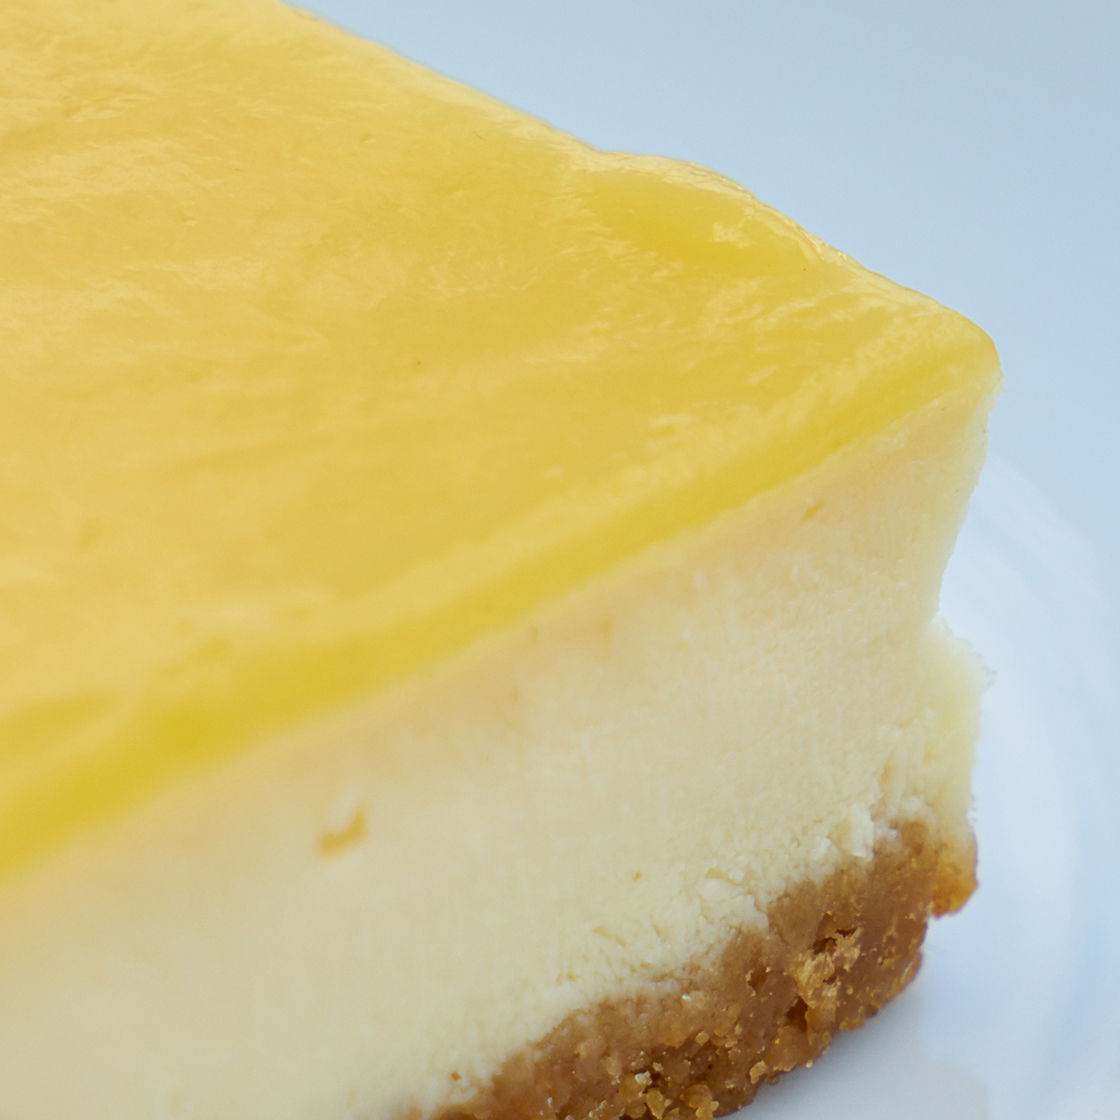 Lemon Cheesecake light